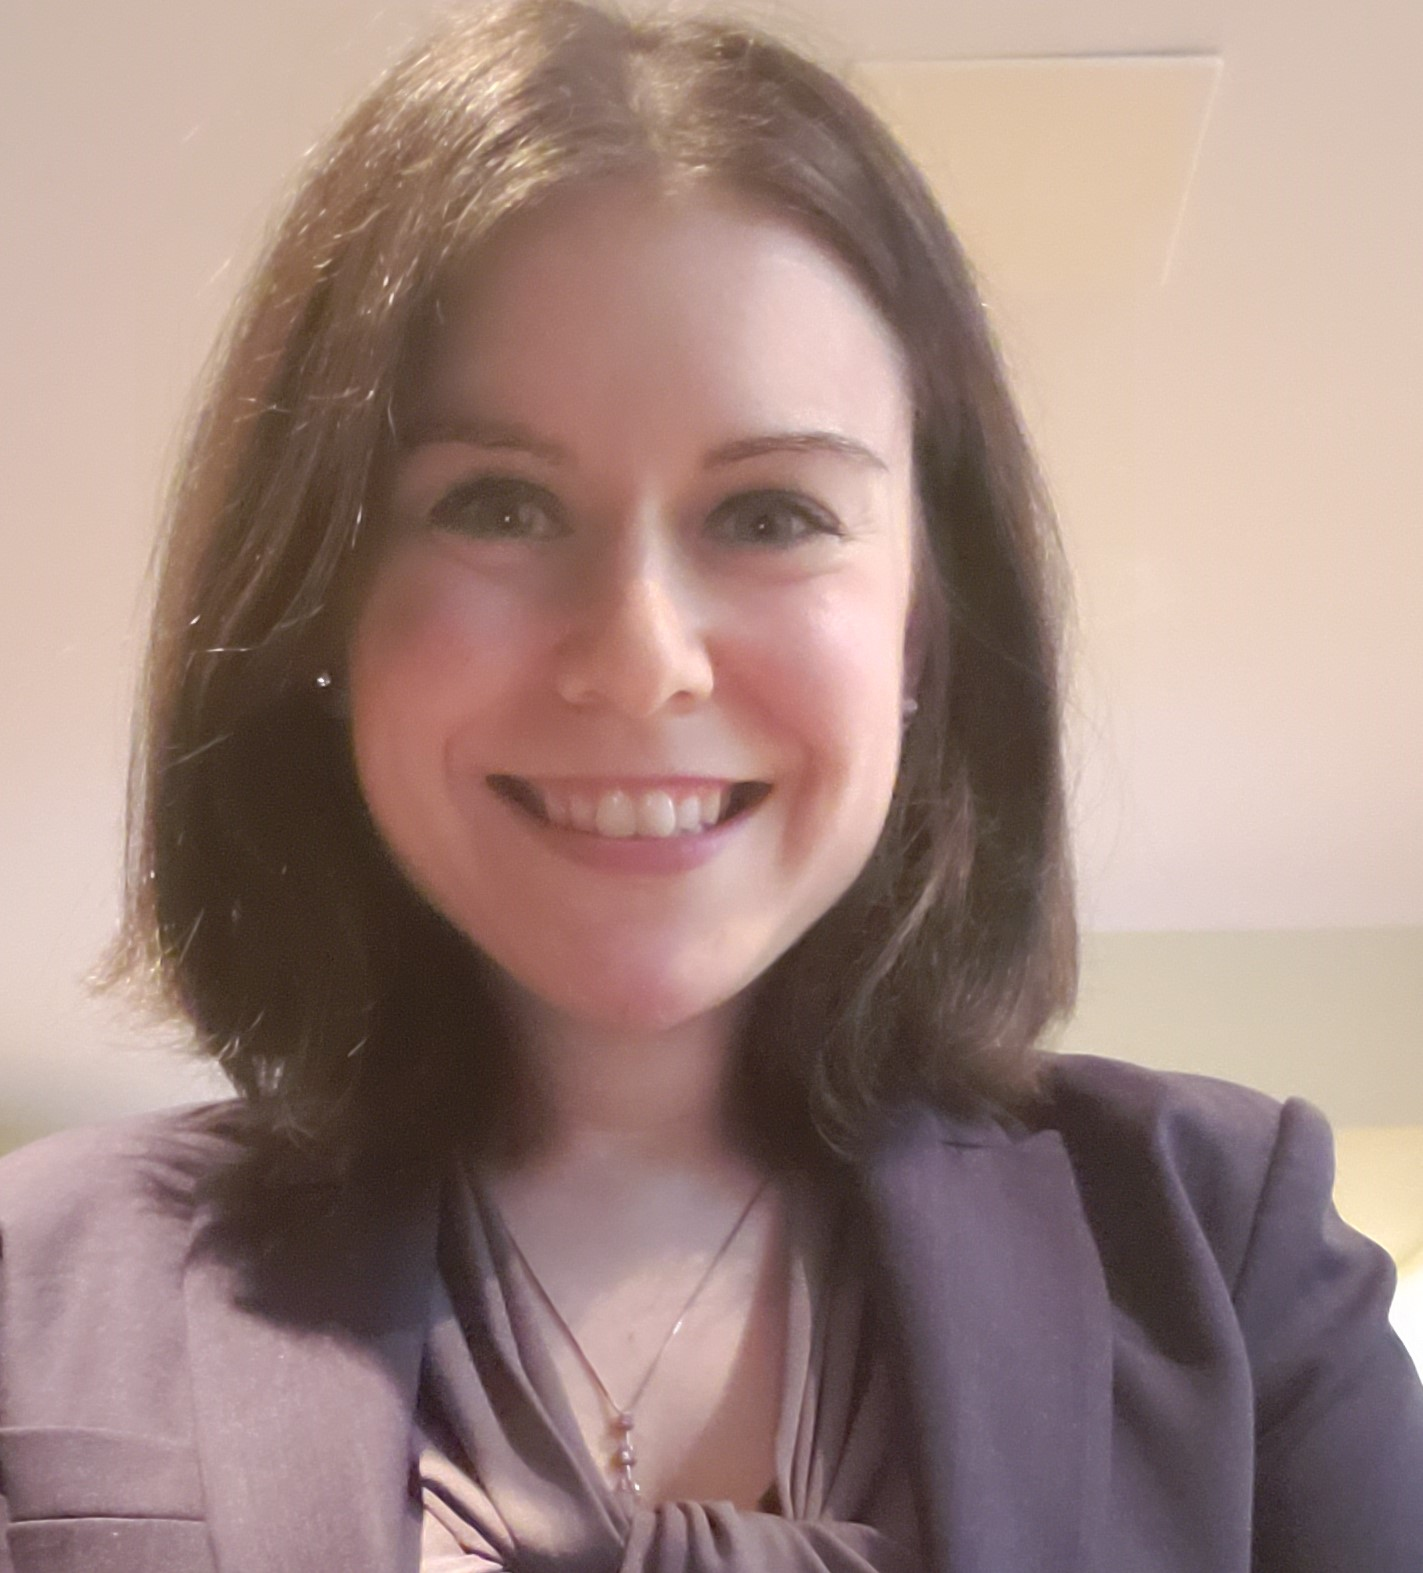 Allison Bernholtz, J.D. - Manager of Policy & Research